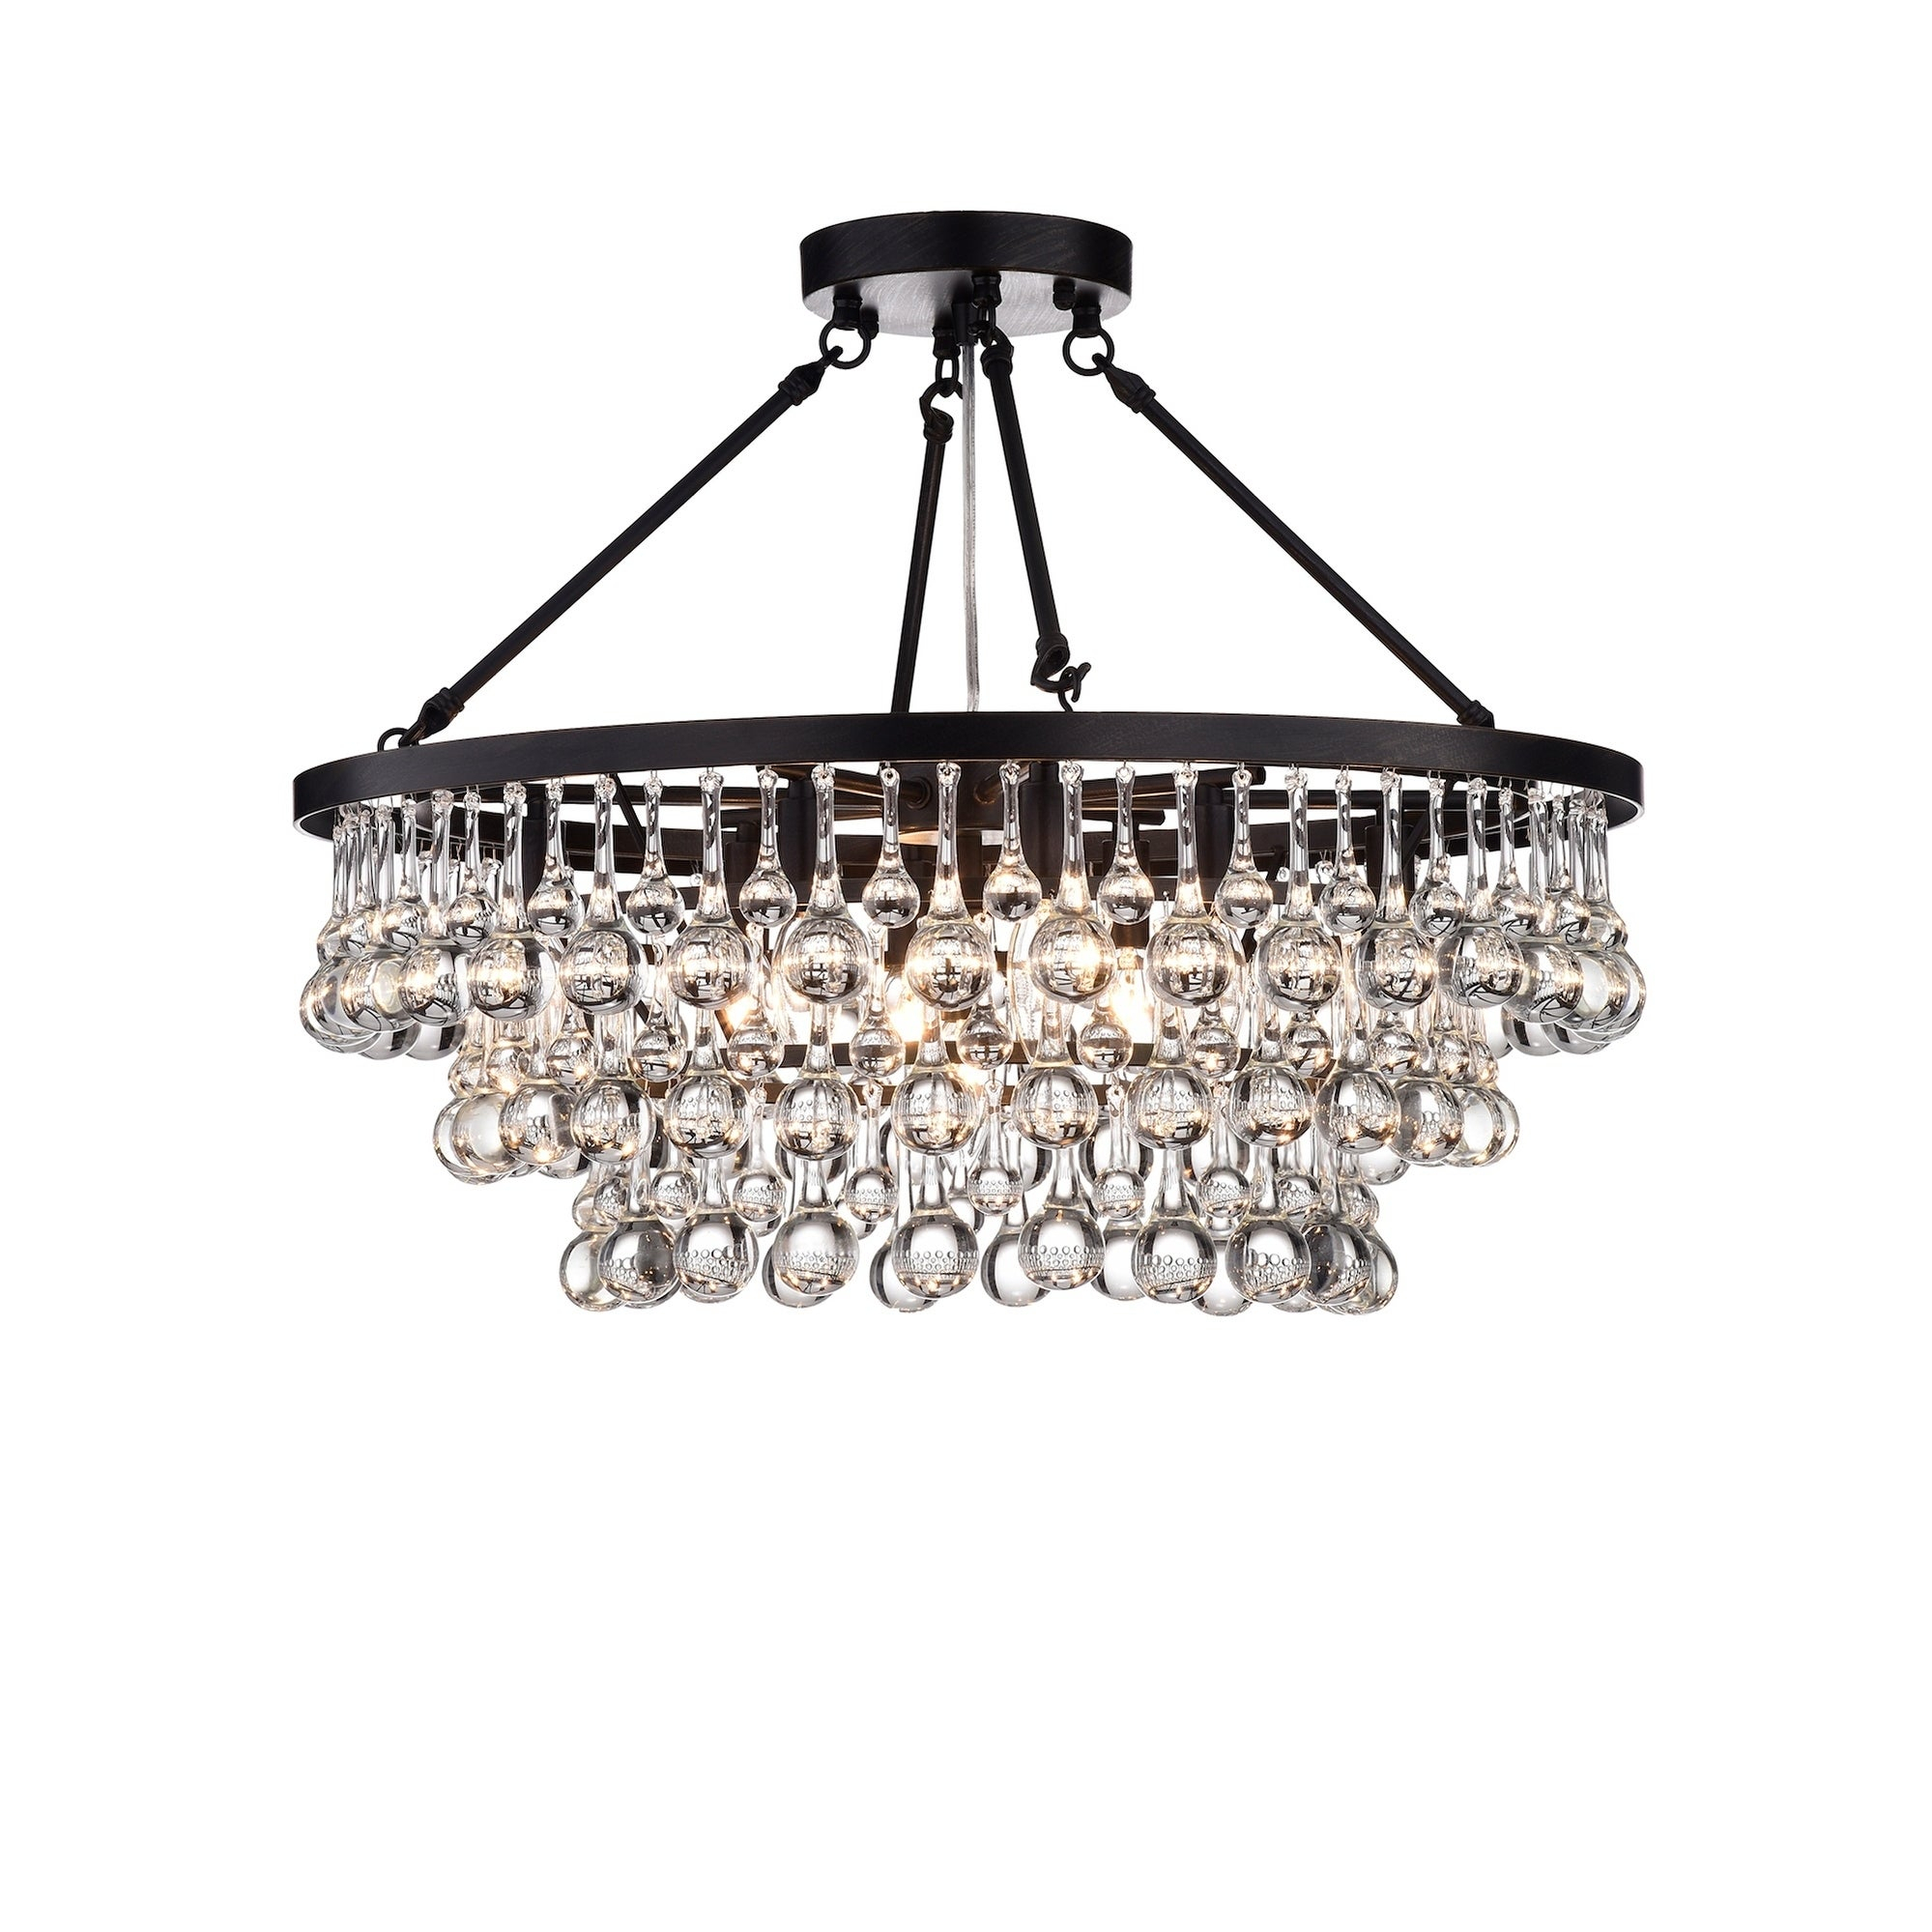 Arosa 9-Light Black Semi Flush Mount with regard to Mcknight 9-Light Chandeliers (Image 9 of 30)